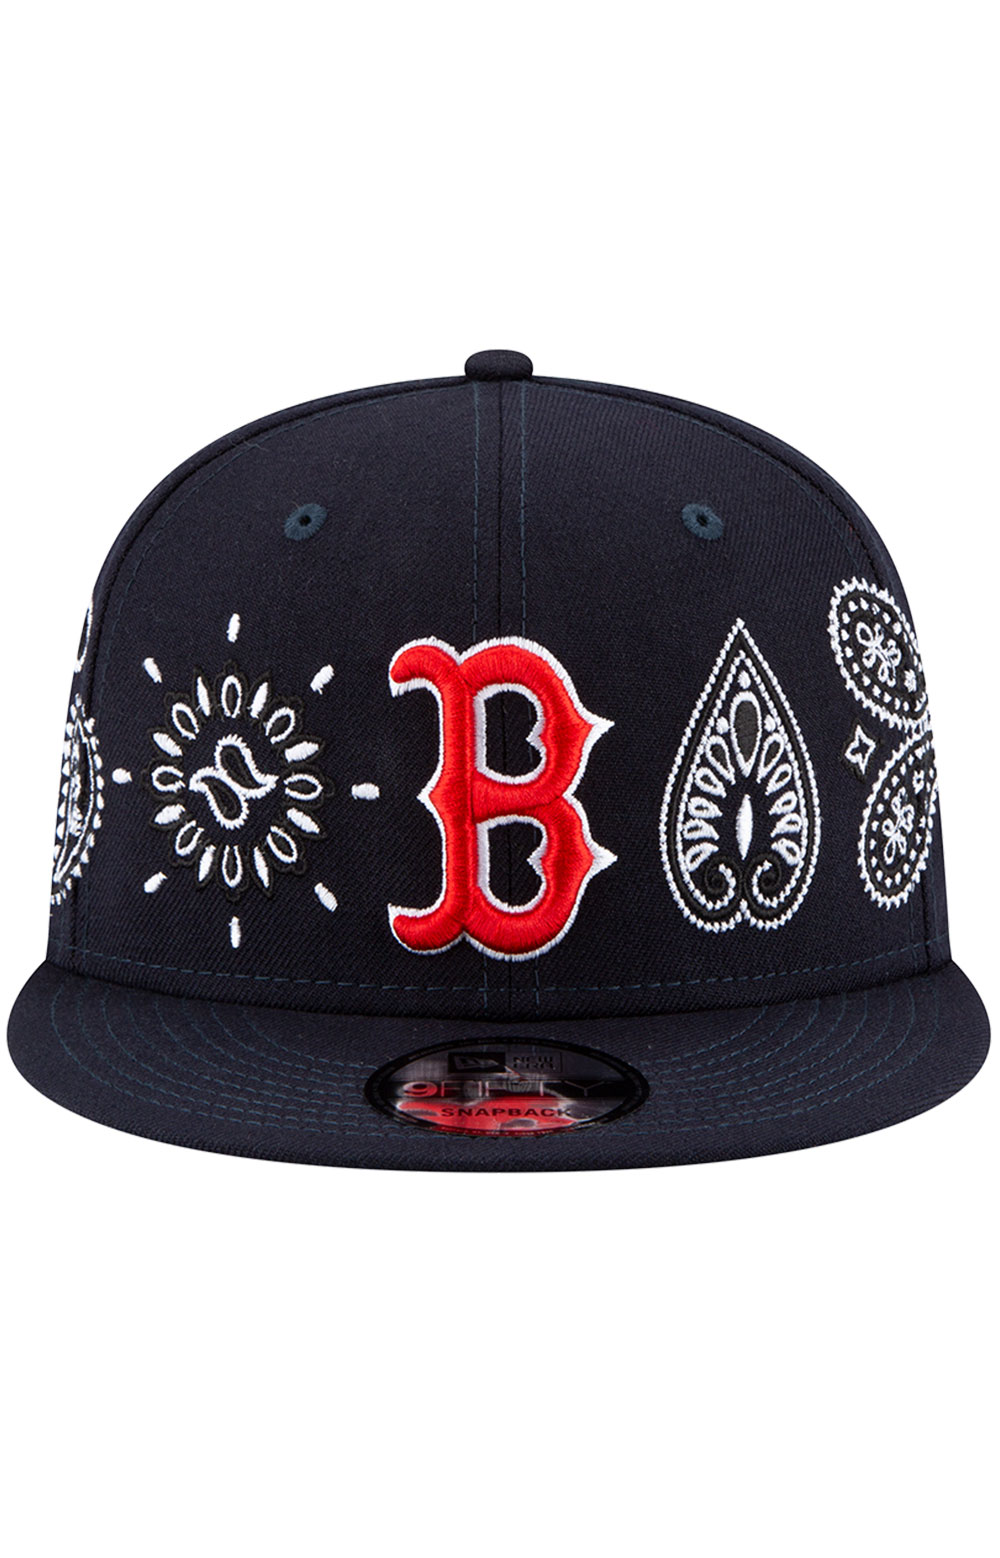 Boston Red Sox Paisley Elements 9Fifty Snap-Back Hat - Black 2